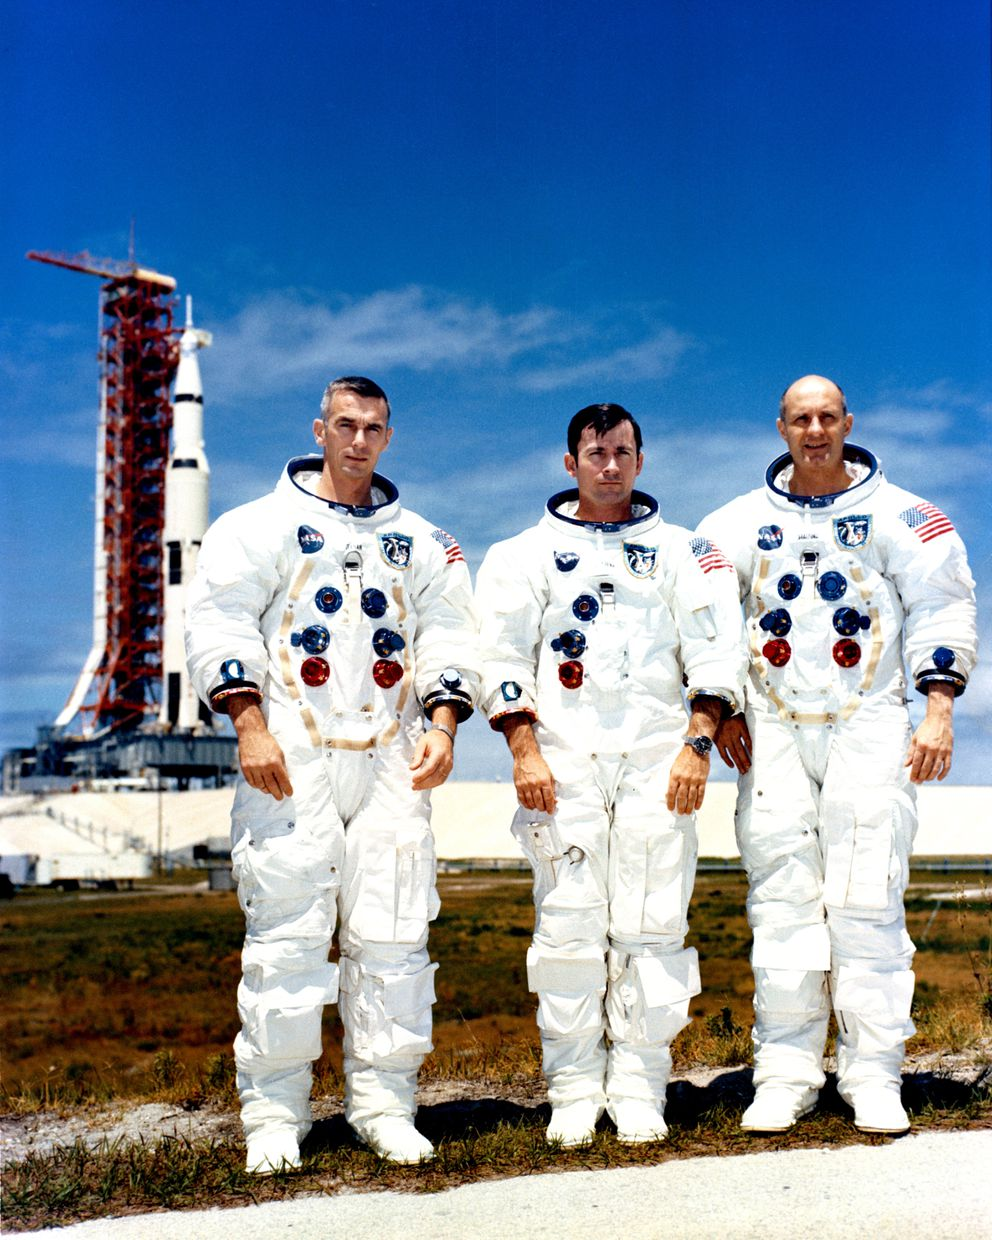 John Young, center, with his Apollo 10 crewmates Eugene Cernan, left, and Thomas Stafford in Florida on May 13, 1969. (NASA via The New York Times)